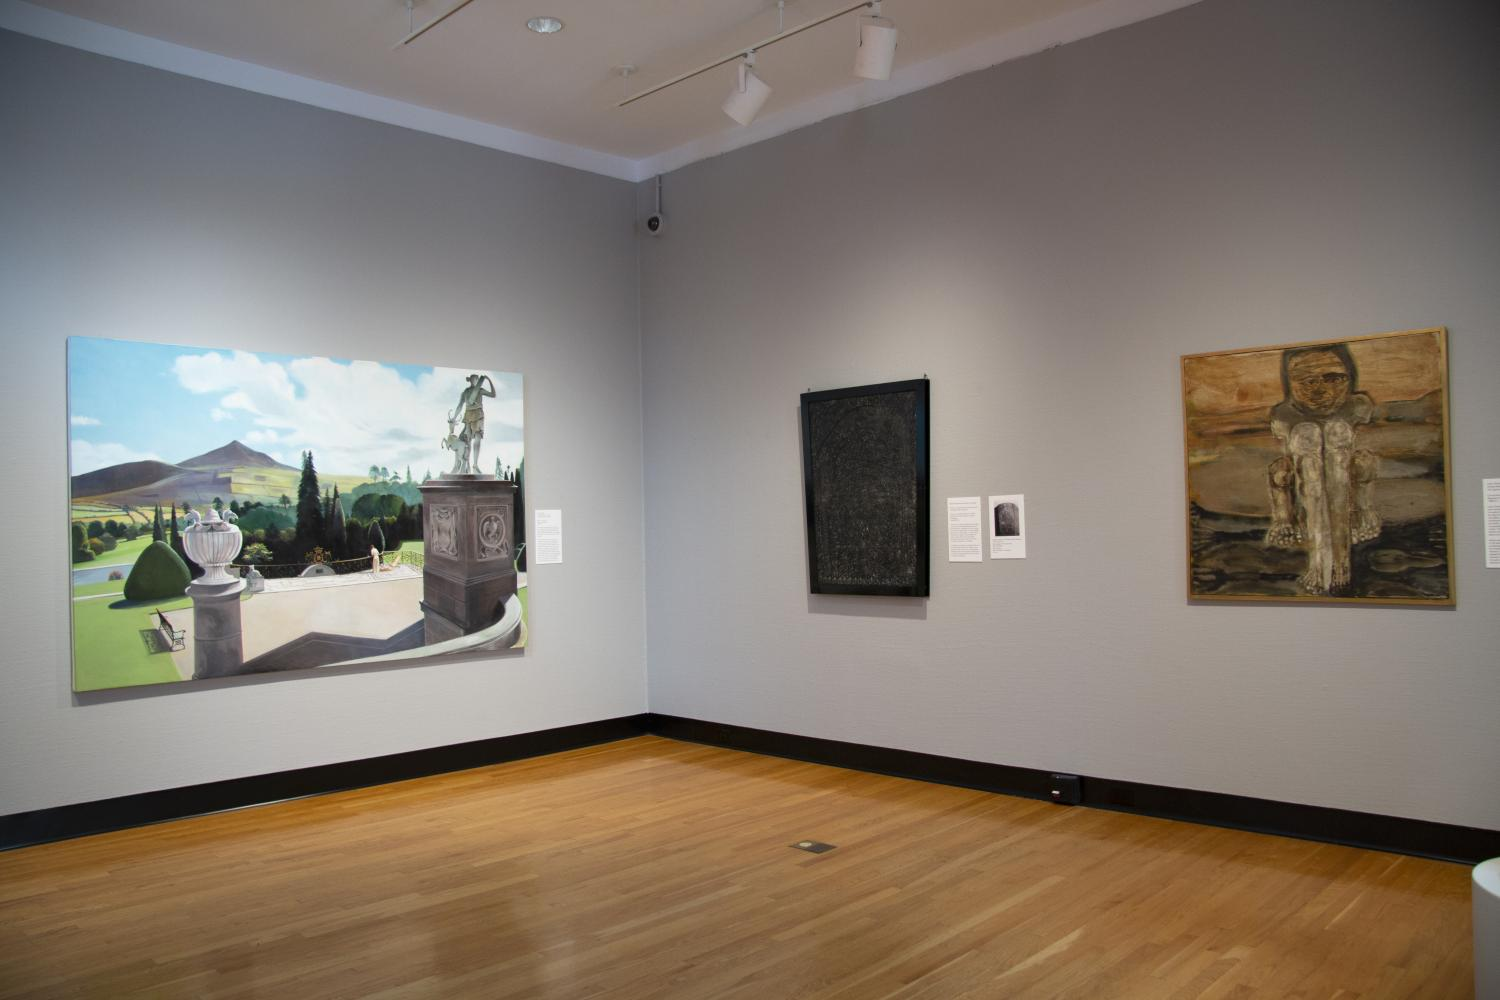 Three paintings on a grey gallery wall. At left is an image of the backs of two pedestals with sculpture and the back of a woman drinking tea looking out over a grand vista. At right are a rubbing of a grave marker and an earth-toned painting of a golem.